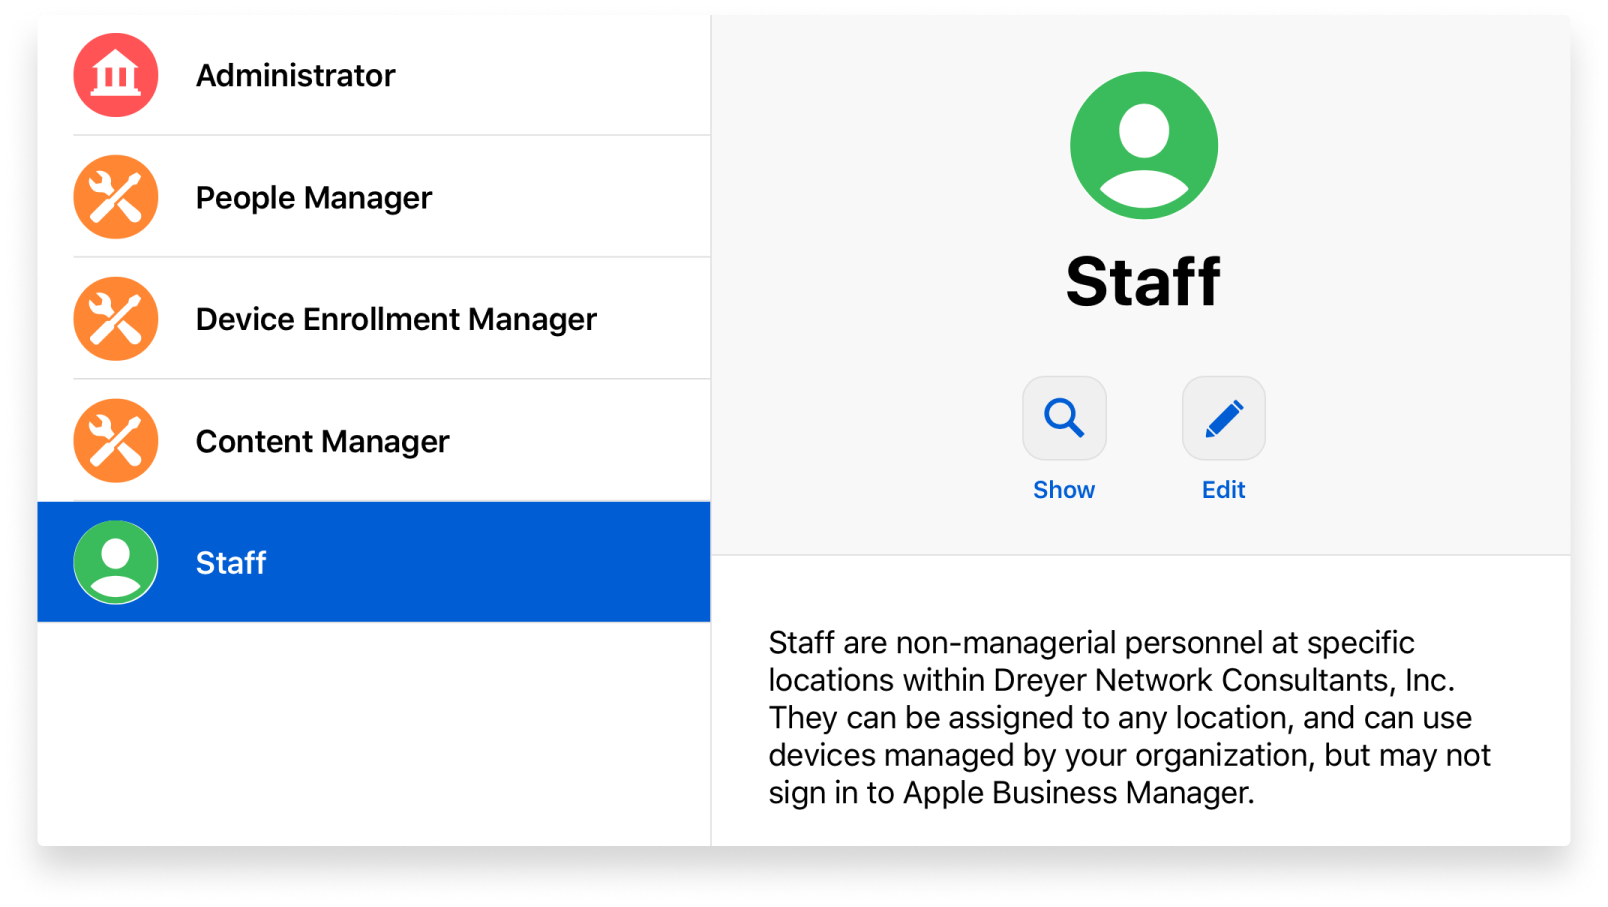 Creating a new Staff role in Apple Business Manager